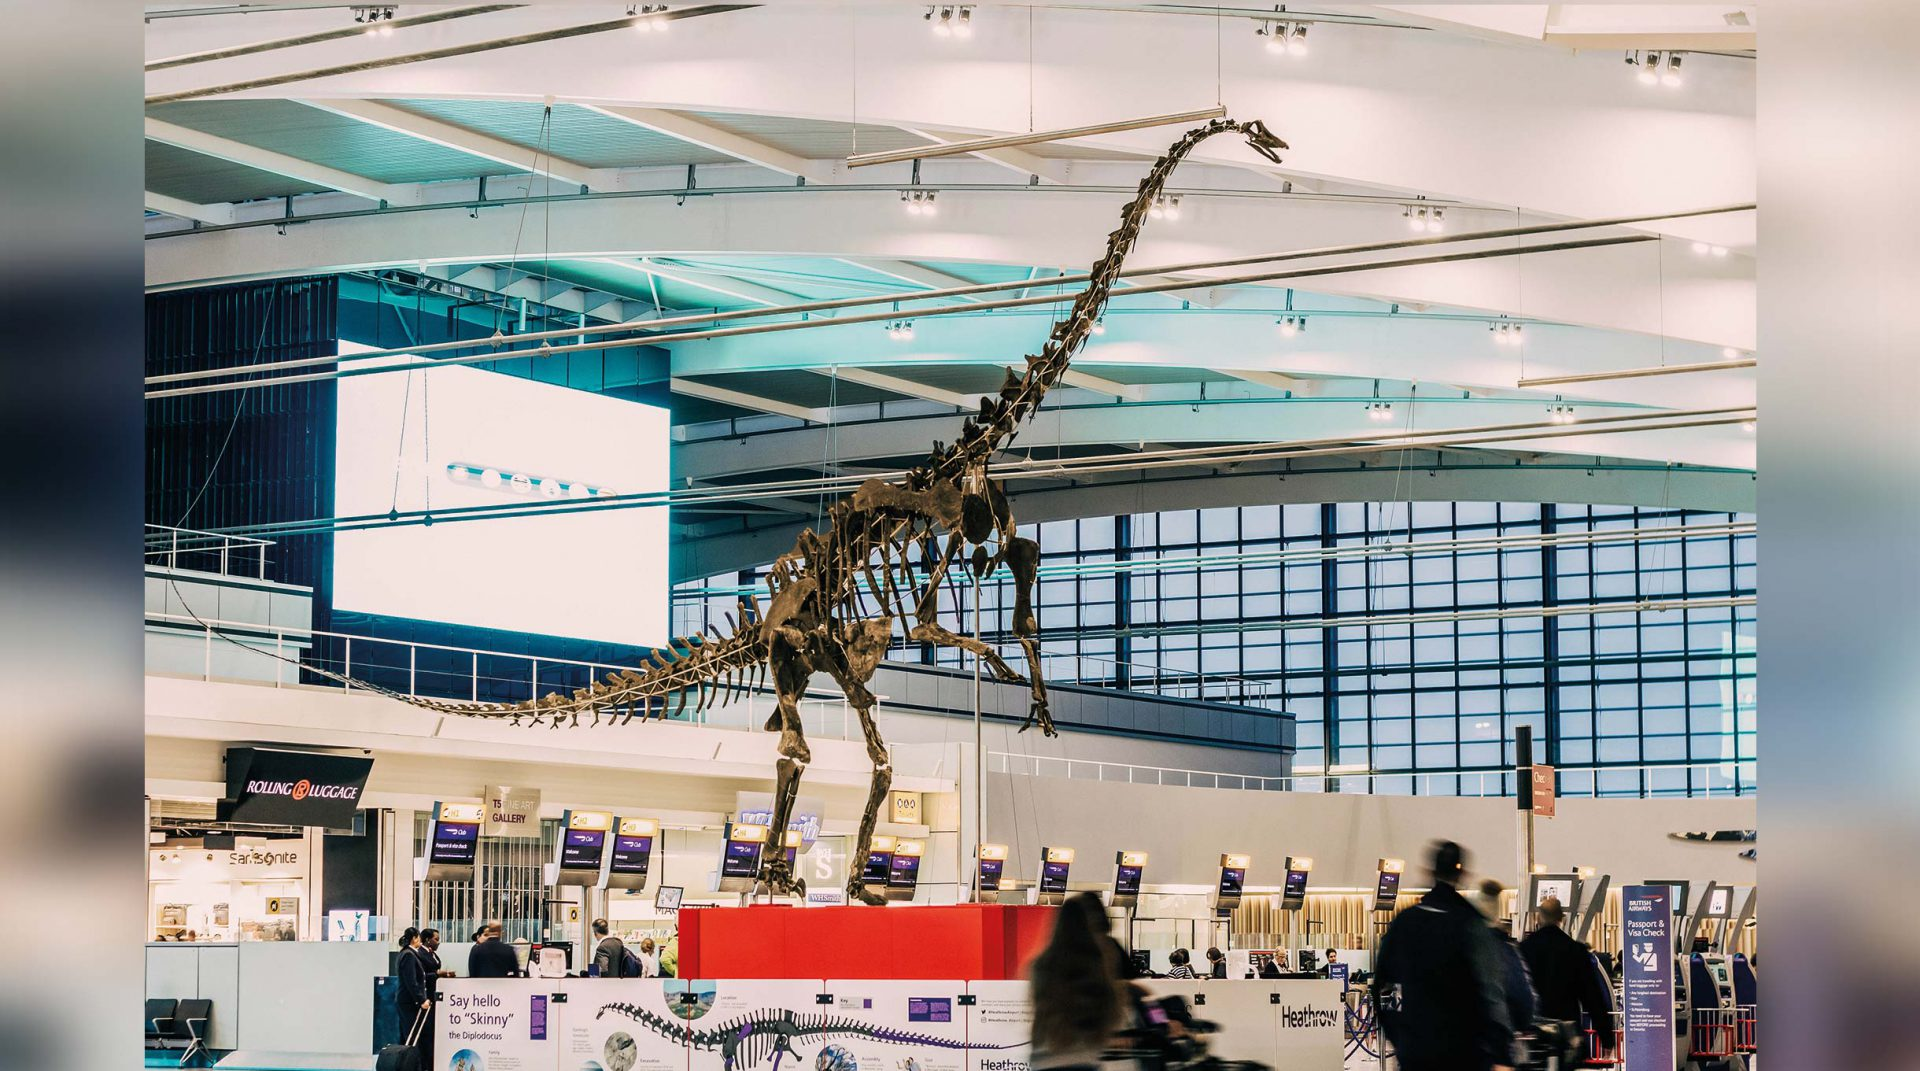 Skinny Diplodocus at Heathrow Terminal 5